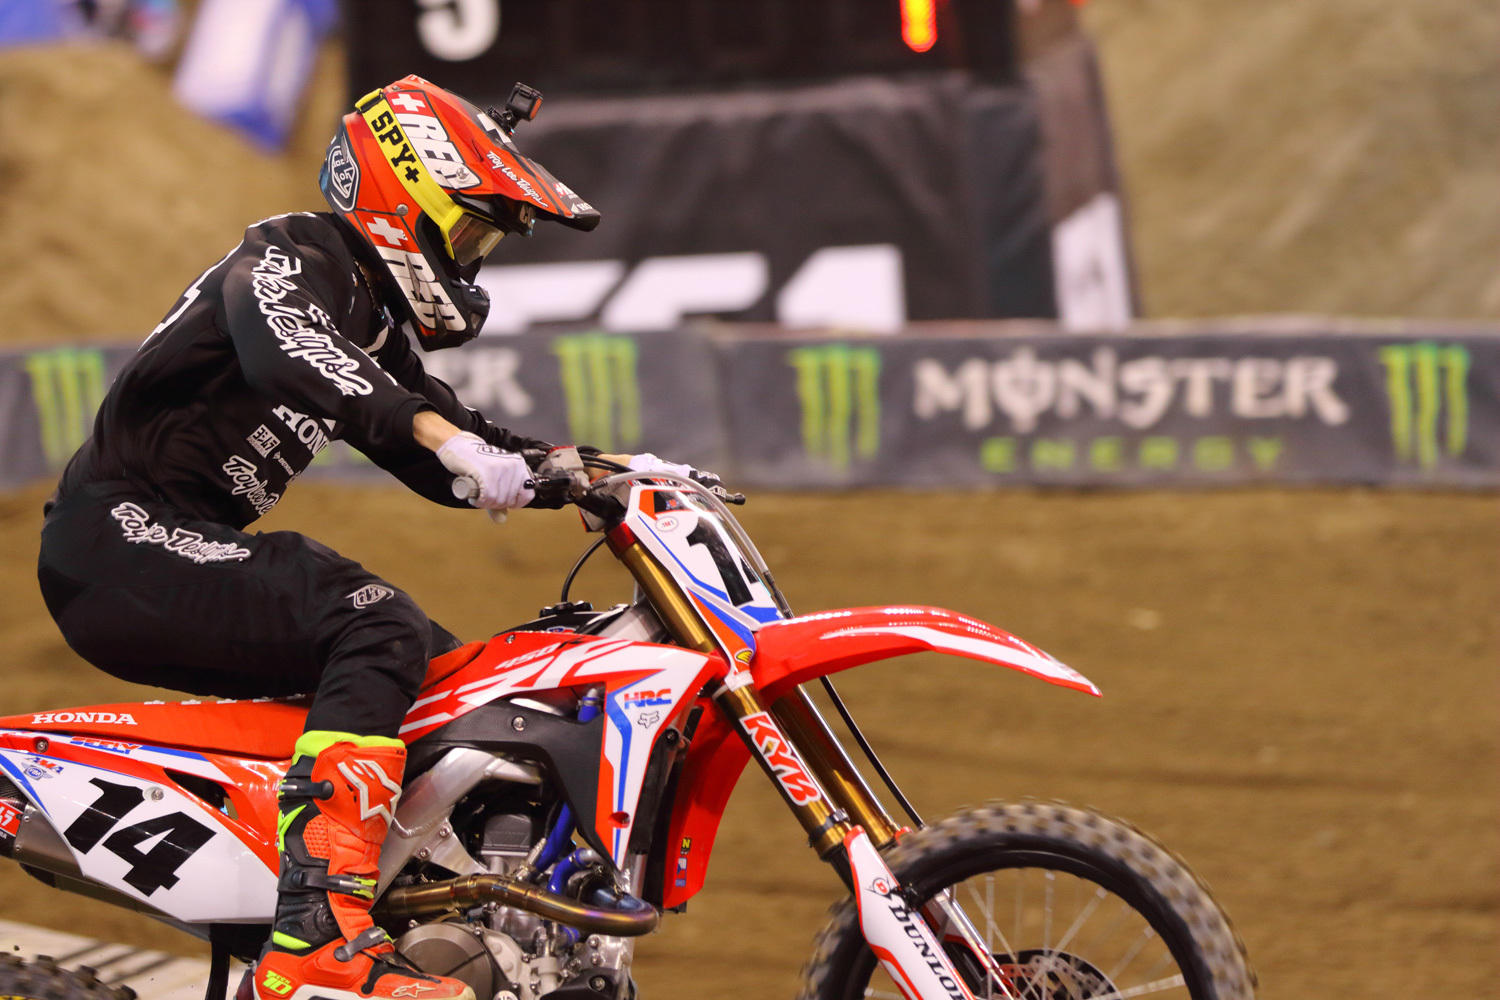 2017 Monster Energy Supercross Indianapolice_d0091546_08394307.jpg